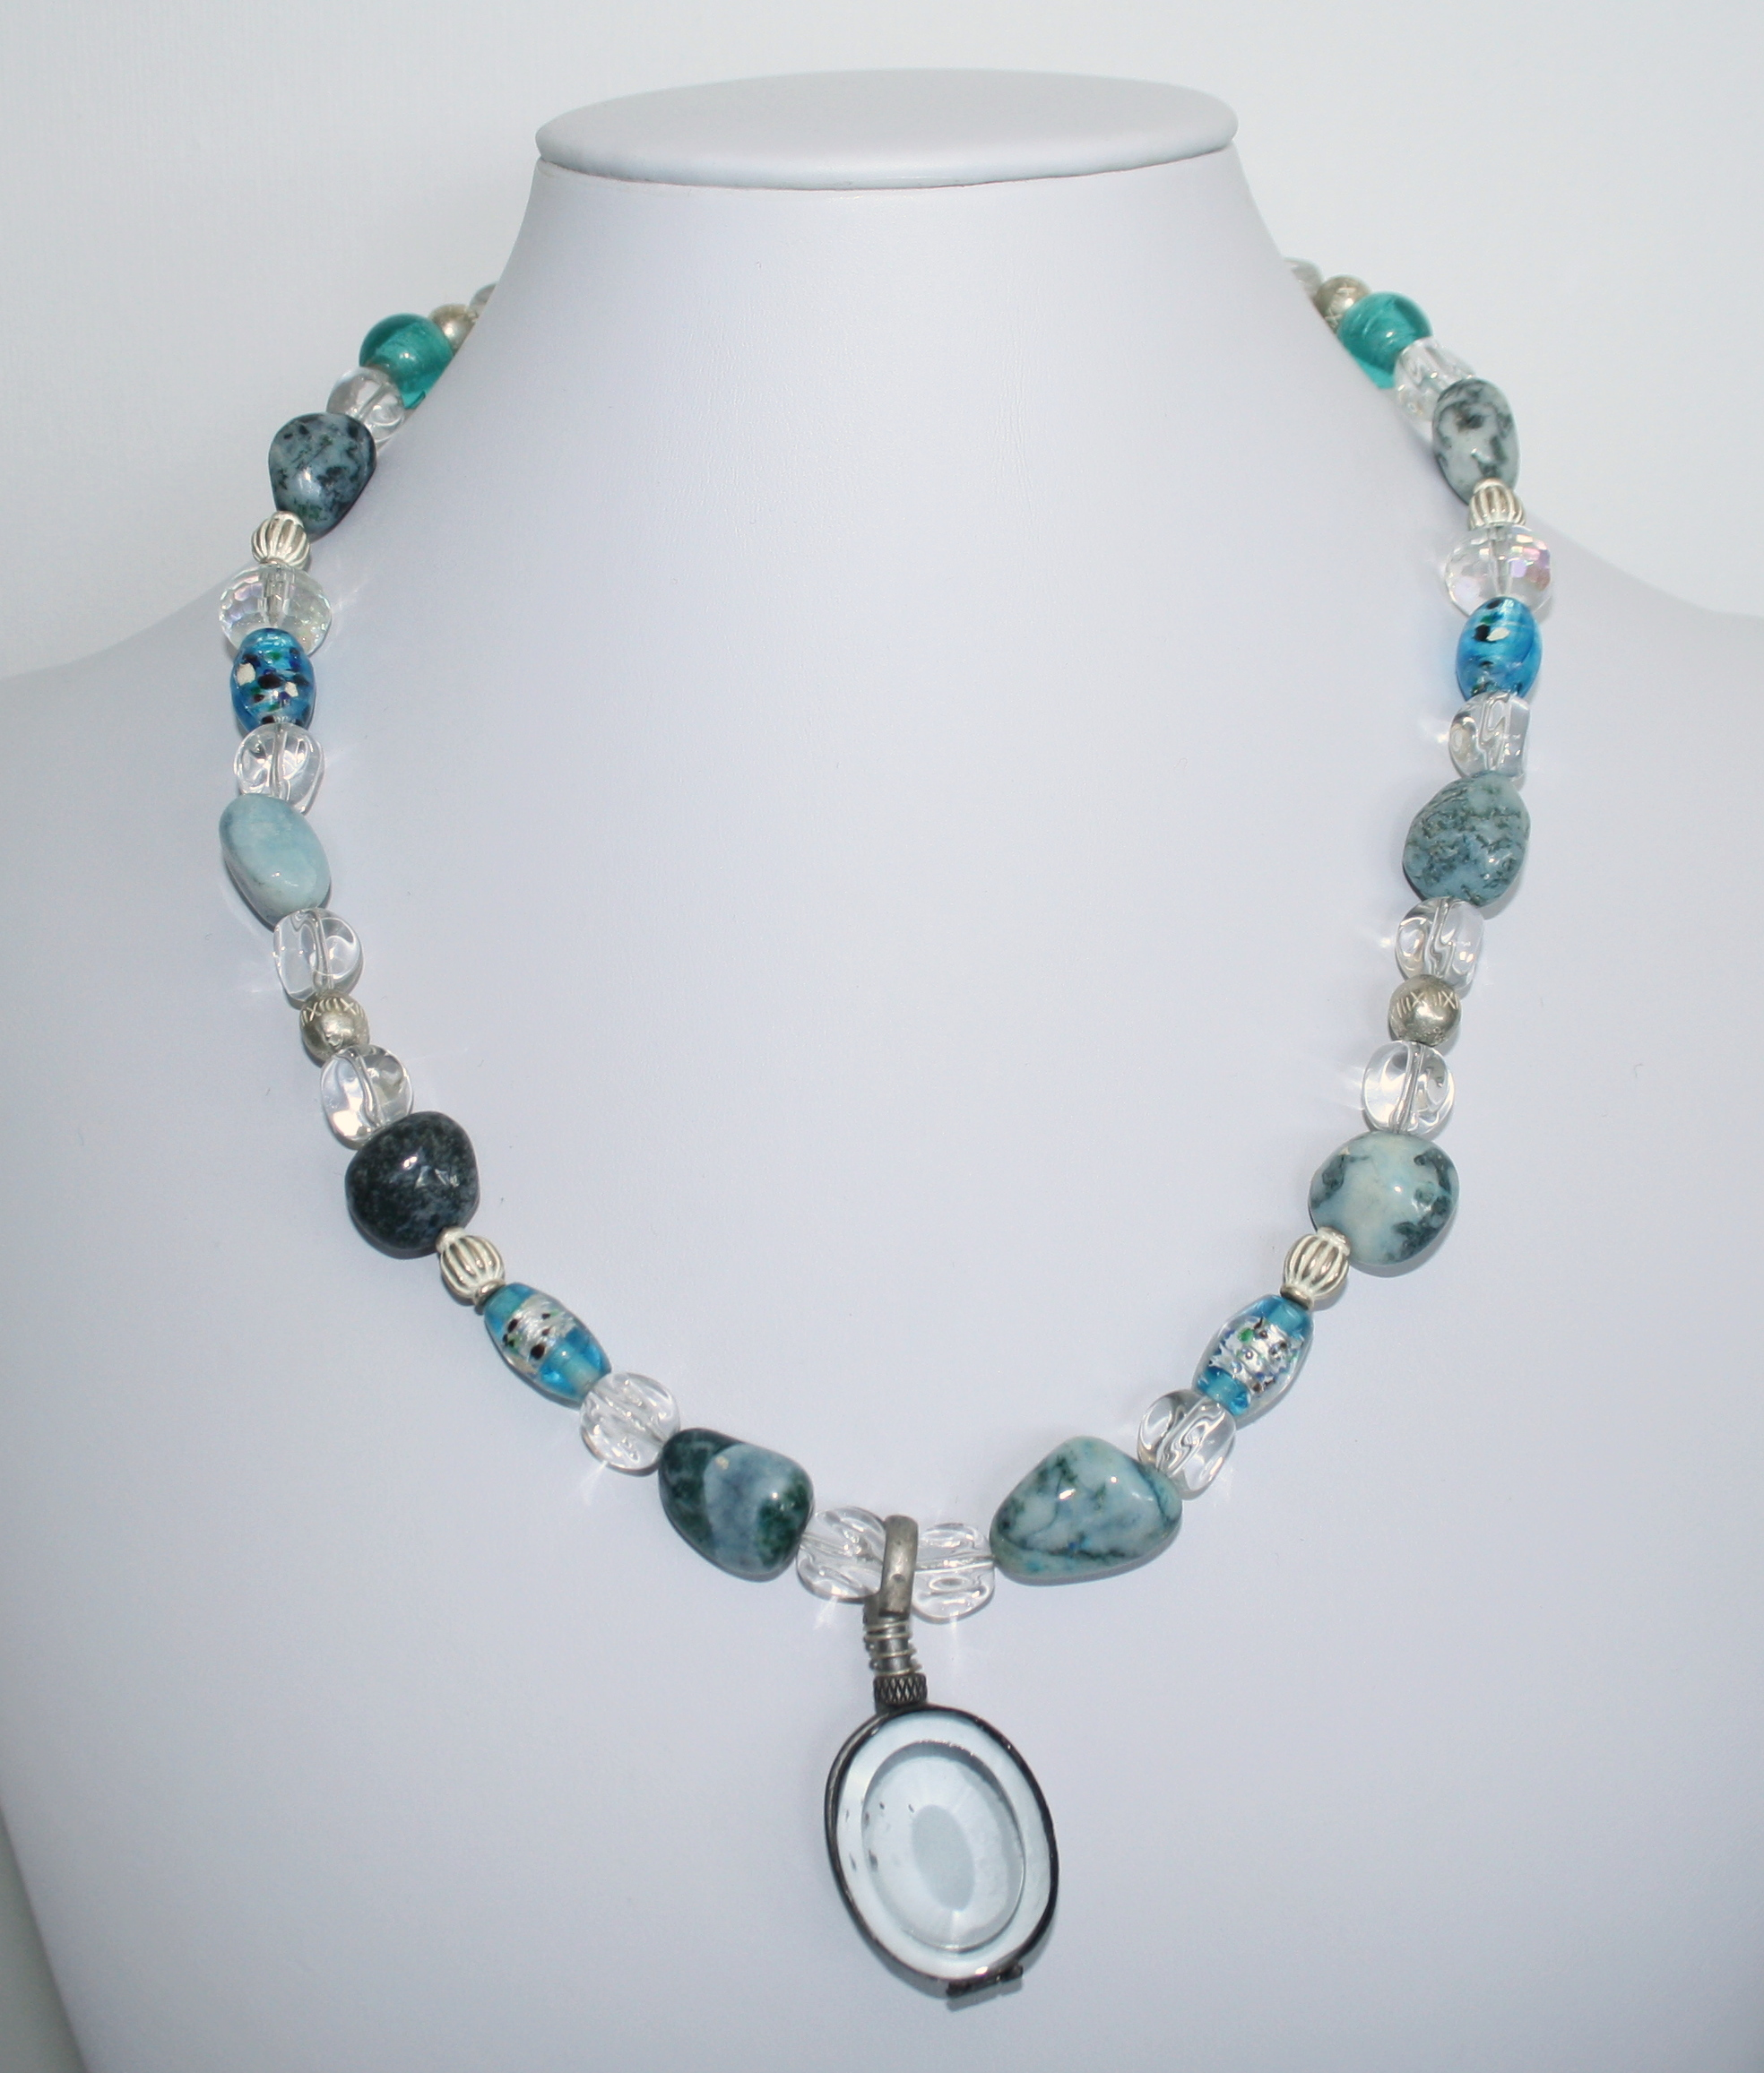 necklace bead turquoise blueshore quartz long blue beach fish product jasper sky pewter